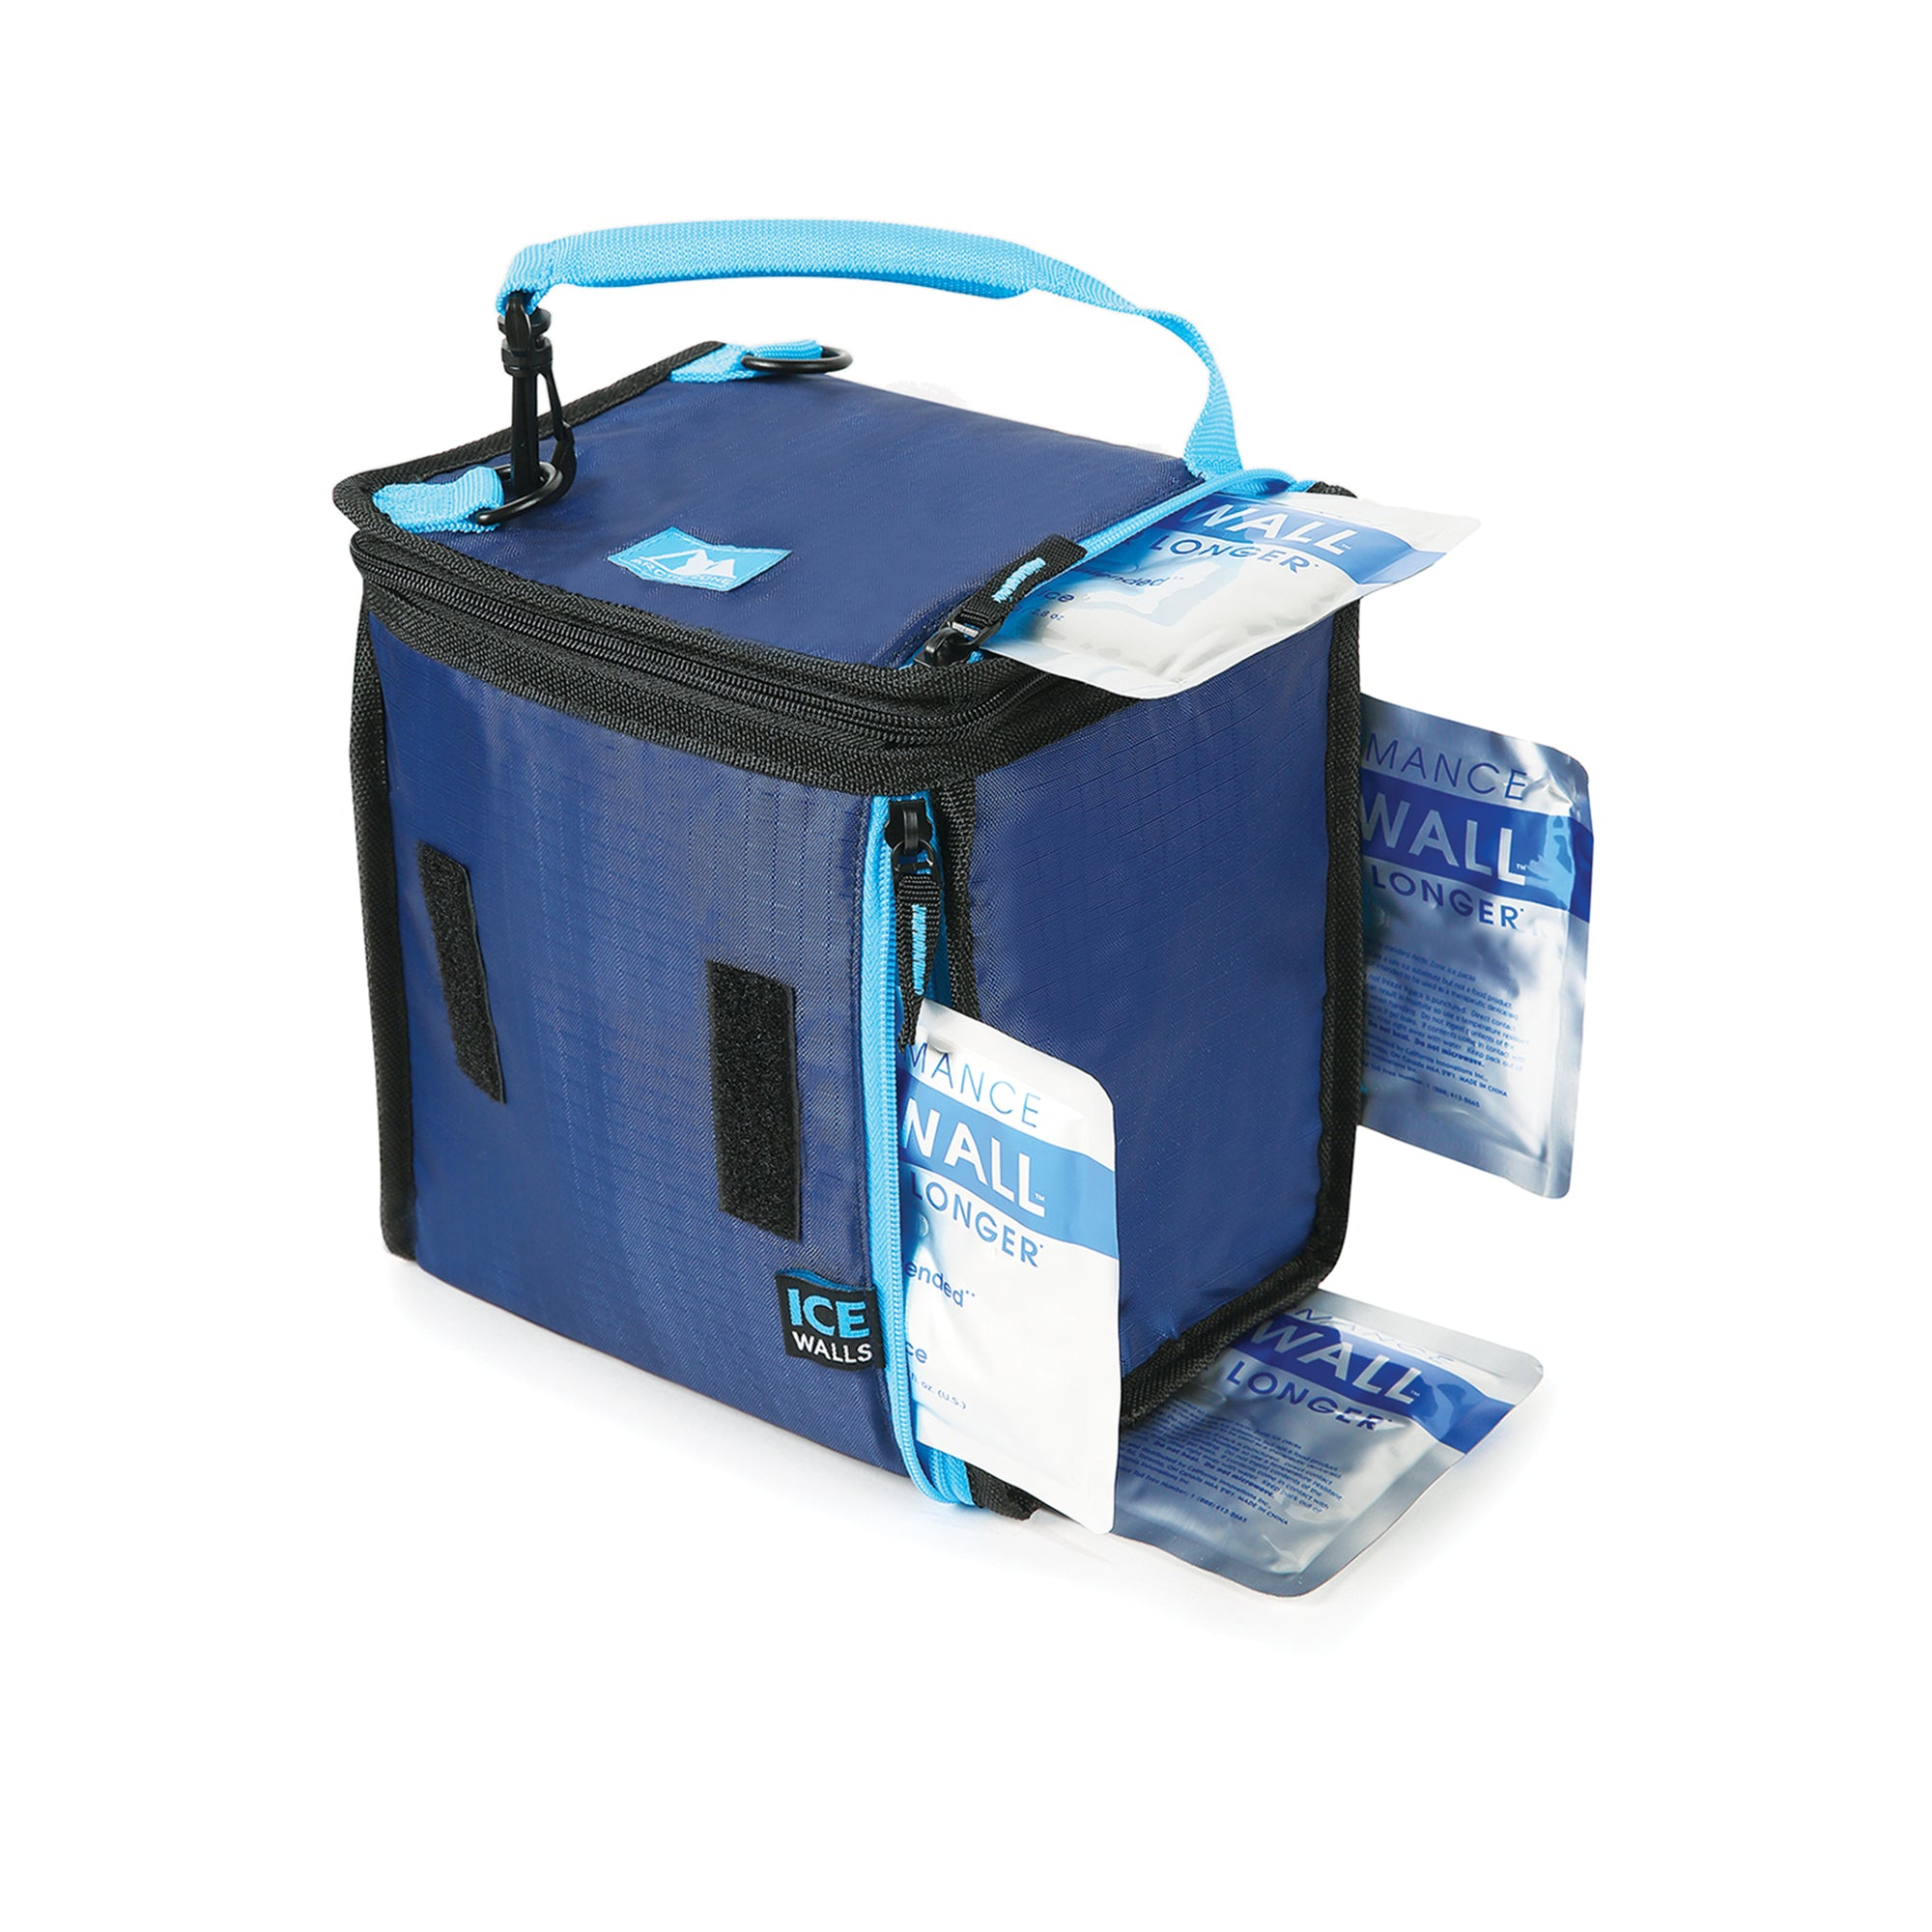 Mega MunchSak® With 4 Ice Walls® - ice walls inserted in lunch bag